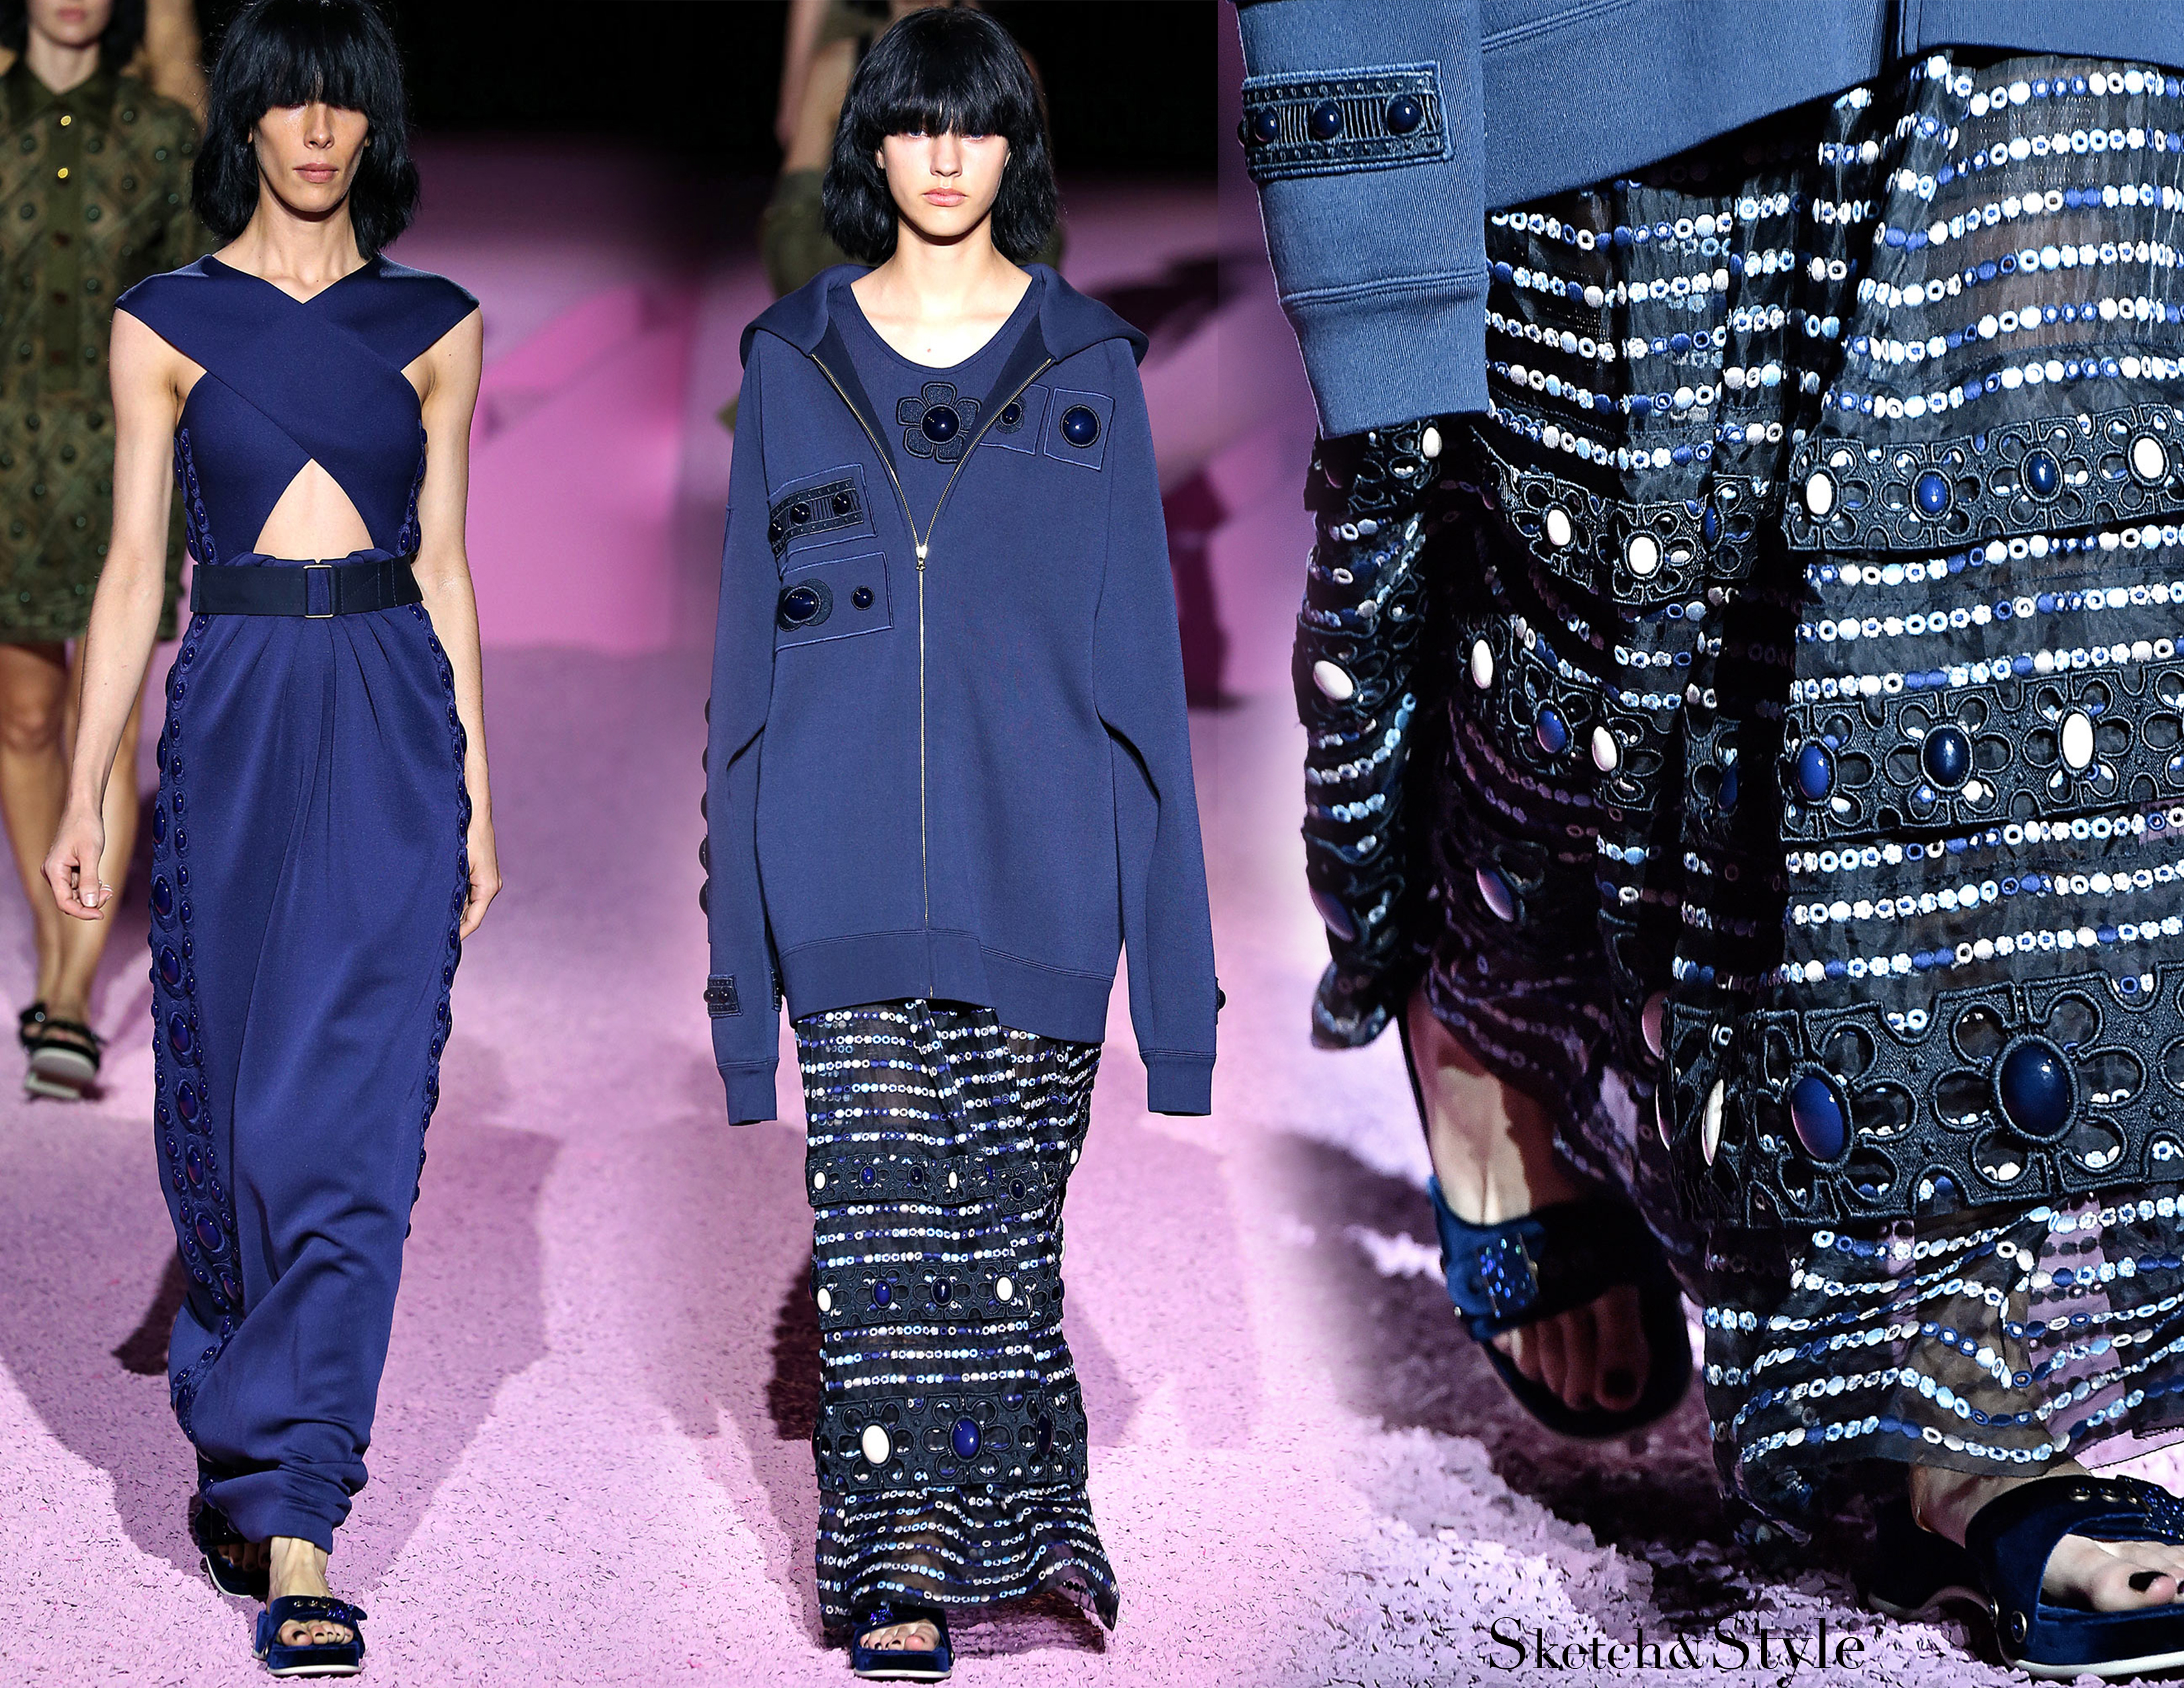 Marc Jacobs|Sketch&Style 1